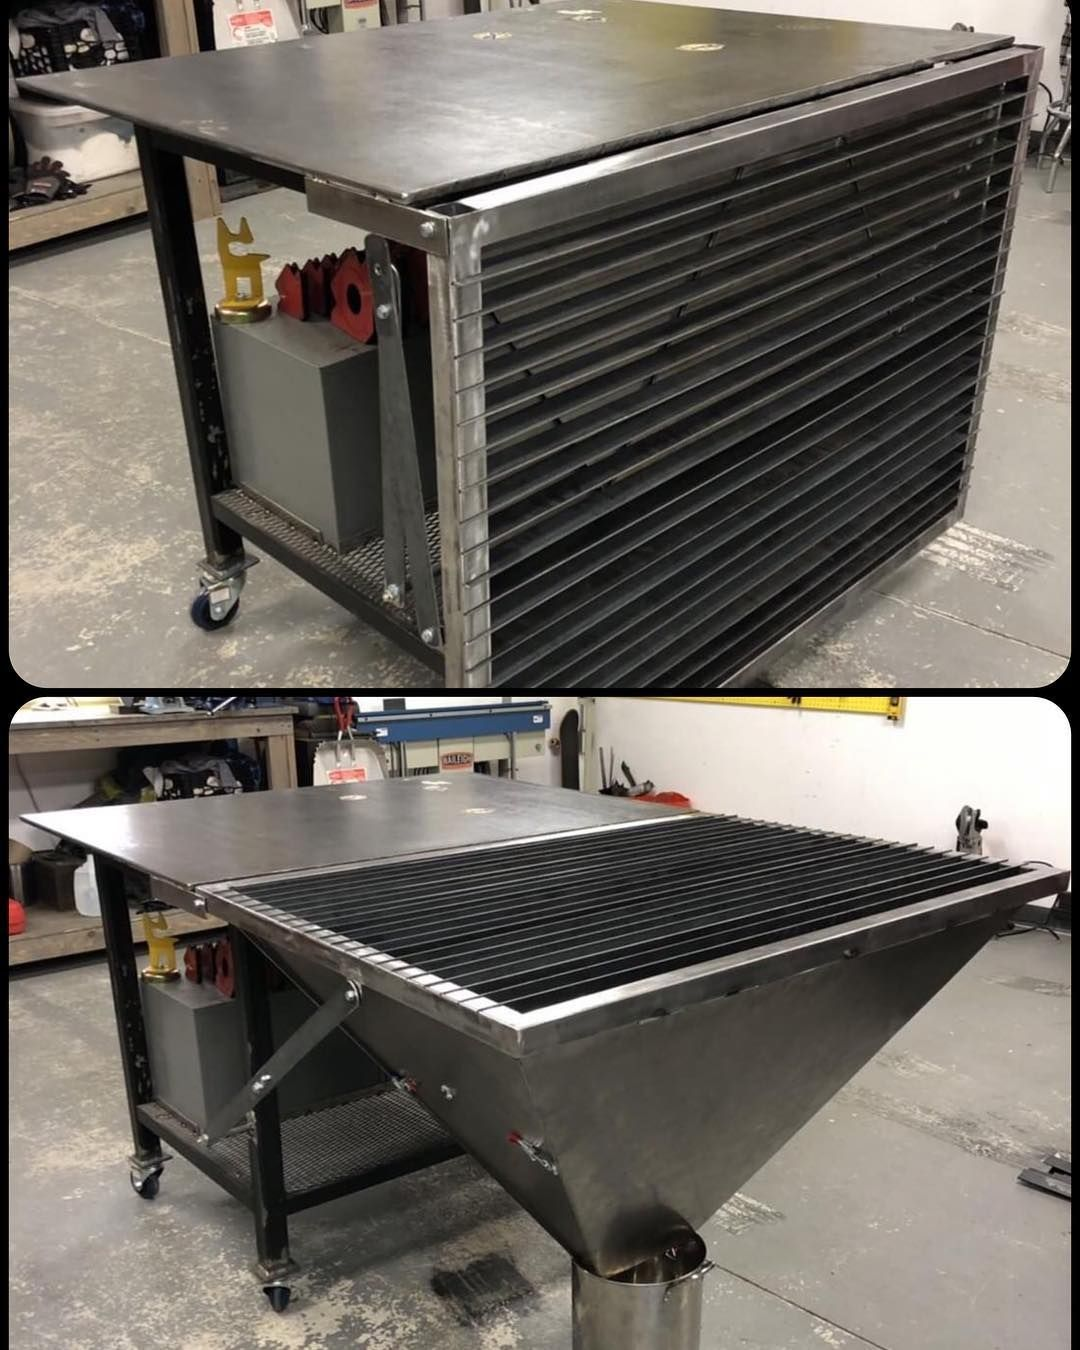 Pin By Jose Luis On Furniture Design In 2020 Welding Table Welding Projects Plasma Table